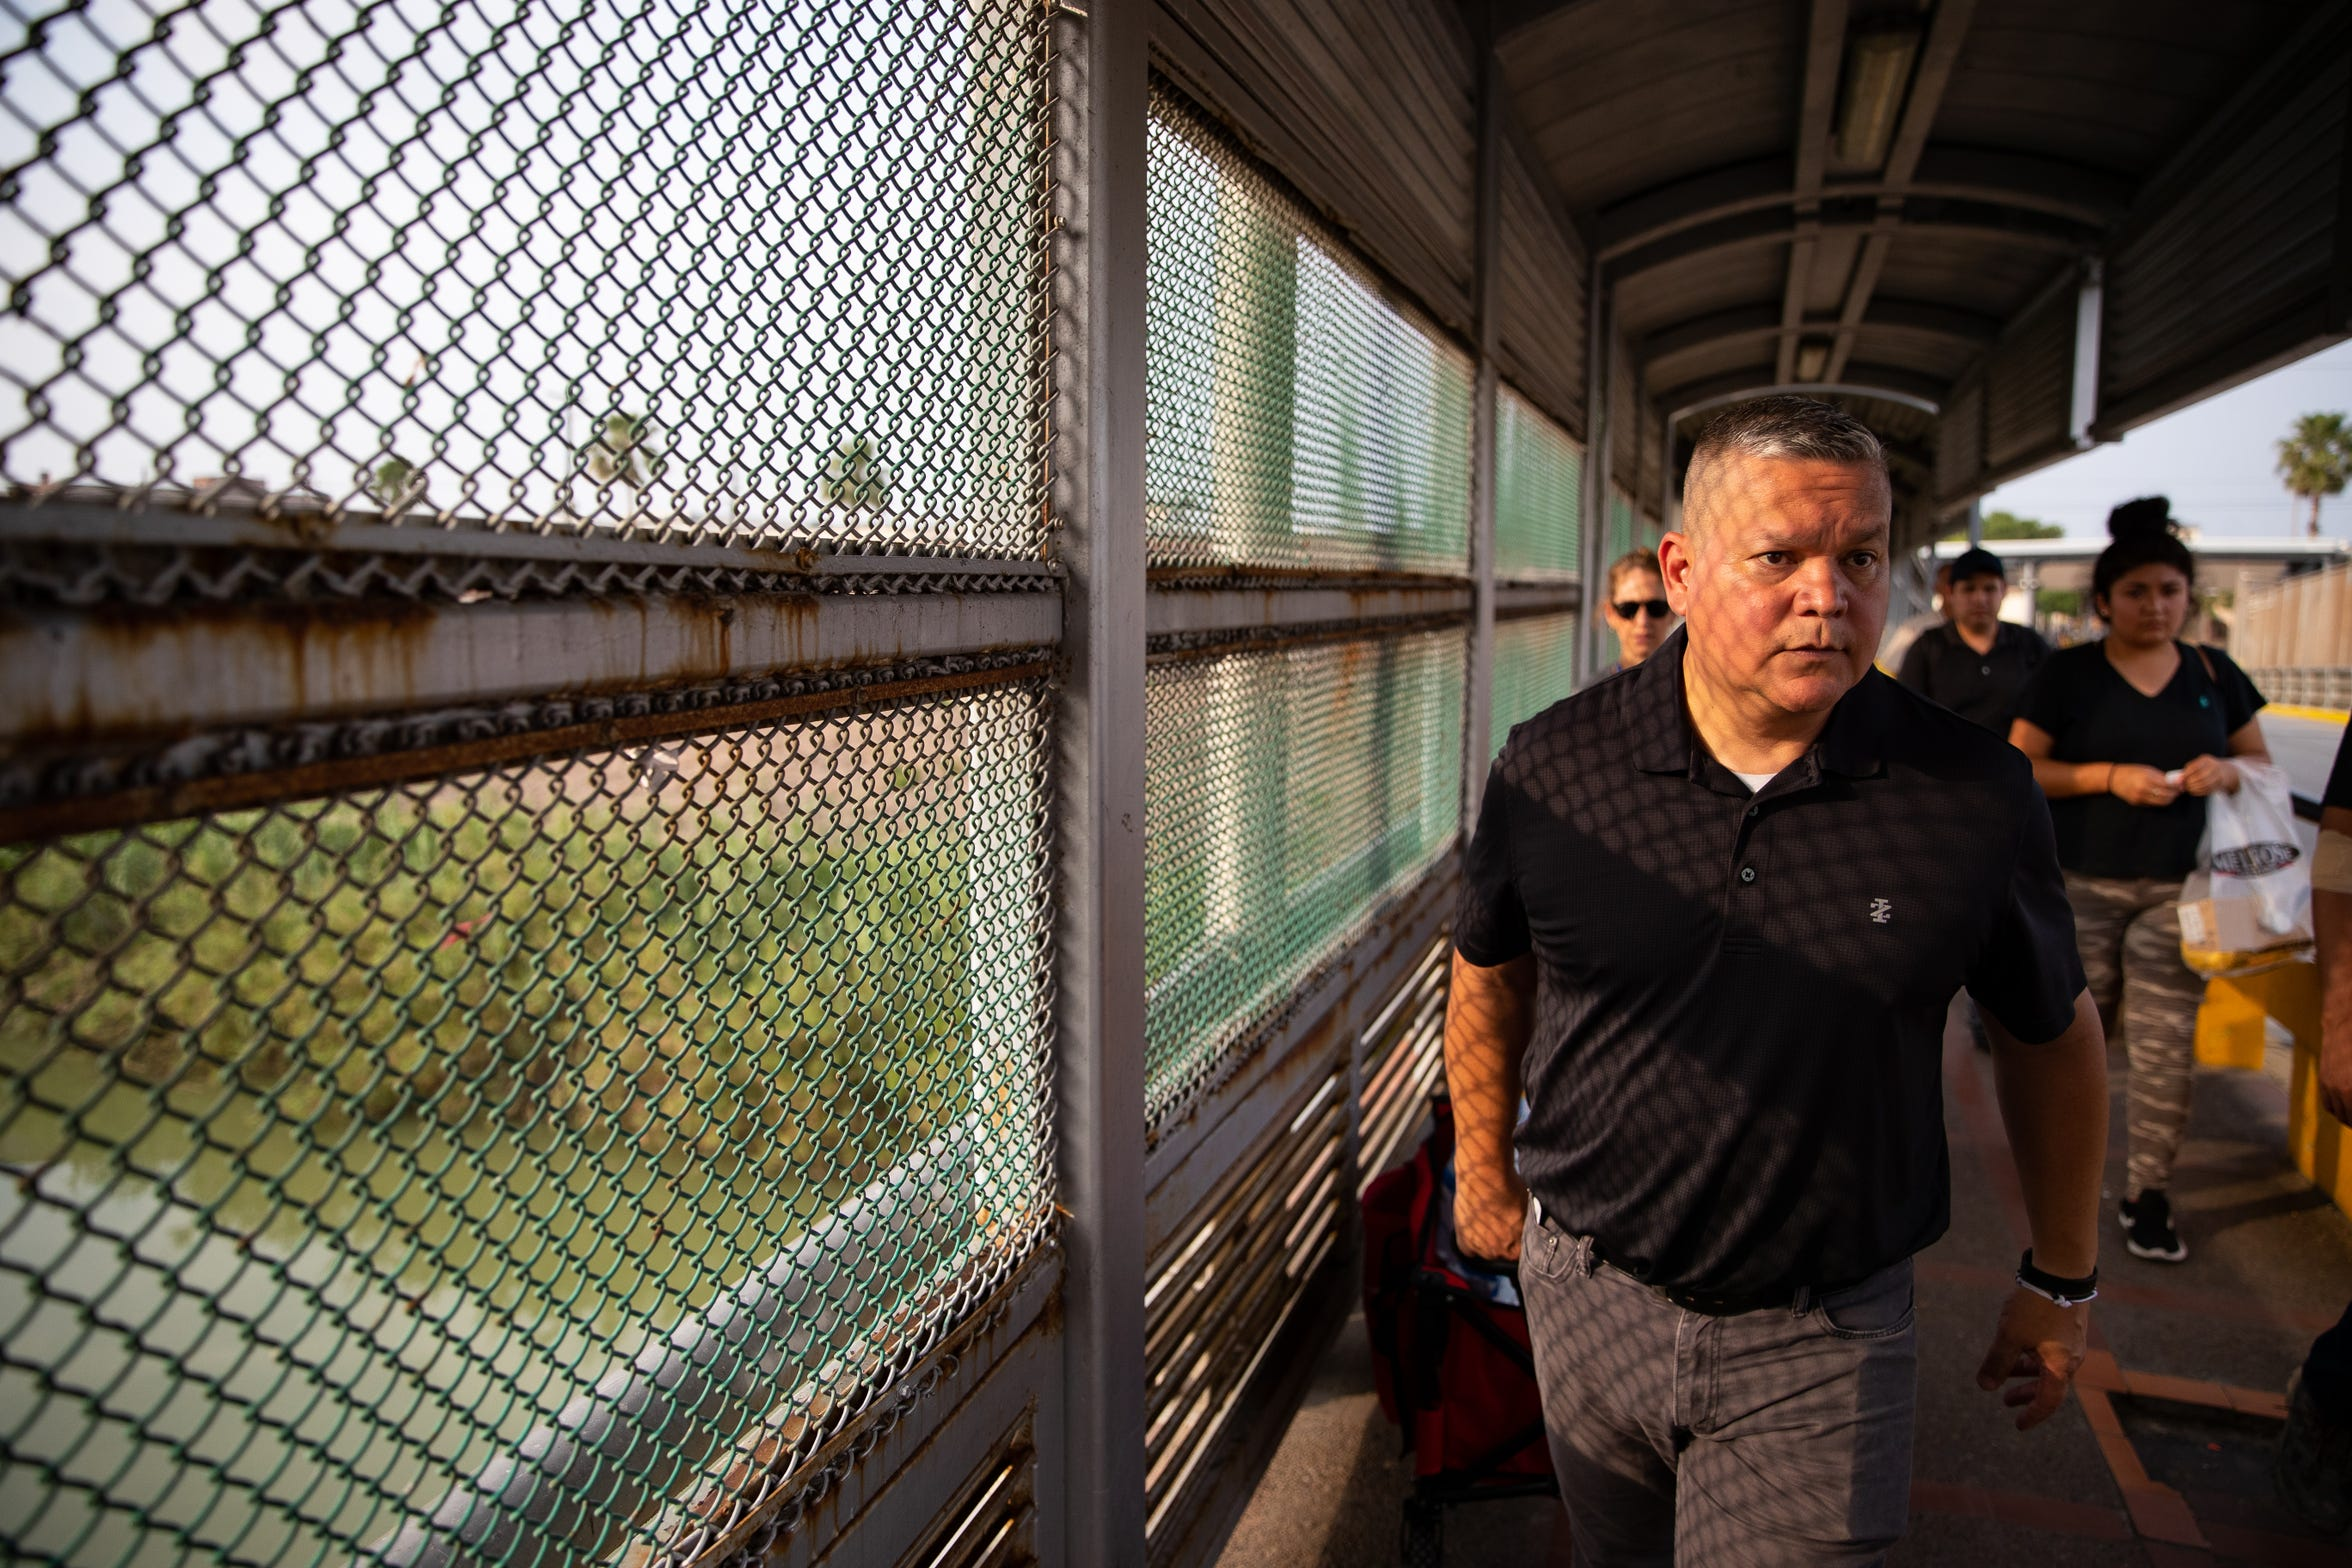 Mike Benavides, of Team Brownsville, pulls a cart full of food and supplies over the Gateway International Bridge to help migrants waiting to seek asylum camped out in a small park next to the bridge in Matamoros, Mexico on Thursday, April 4, 2019. Benavides and other volunteers bring two meals a day from the Brownsville Texas to Matamoros, Mexico to help the migrants waiting to seek asylum in the US.